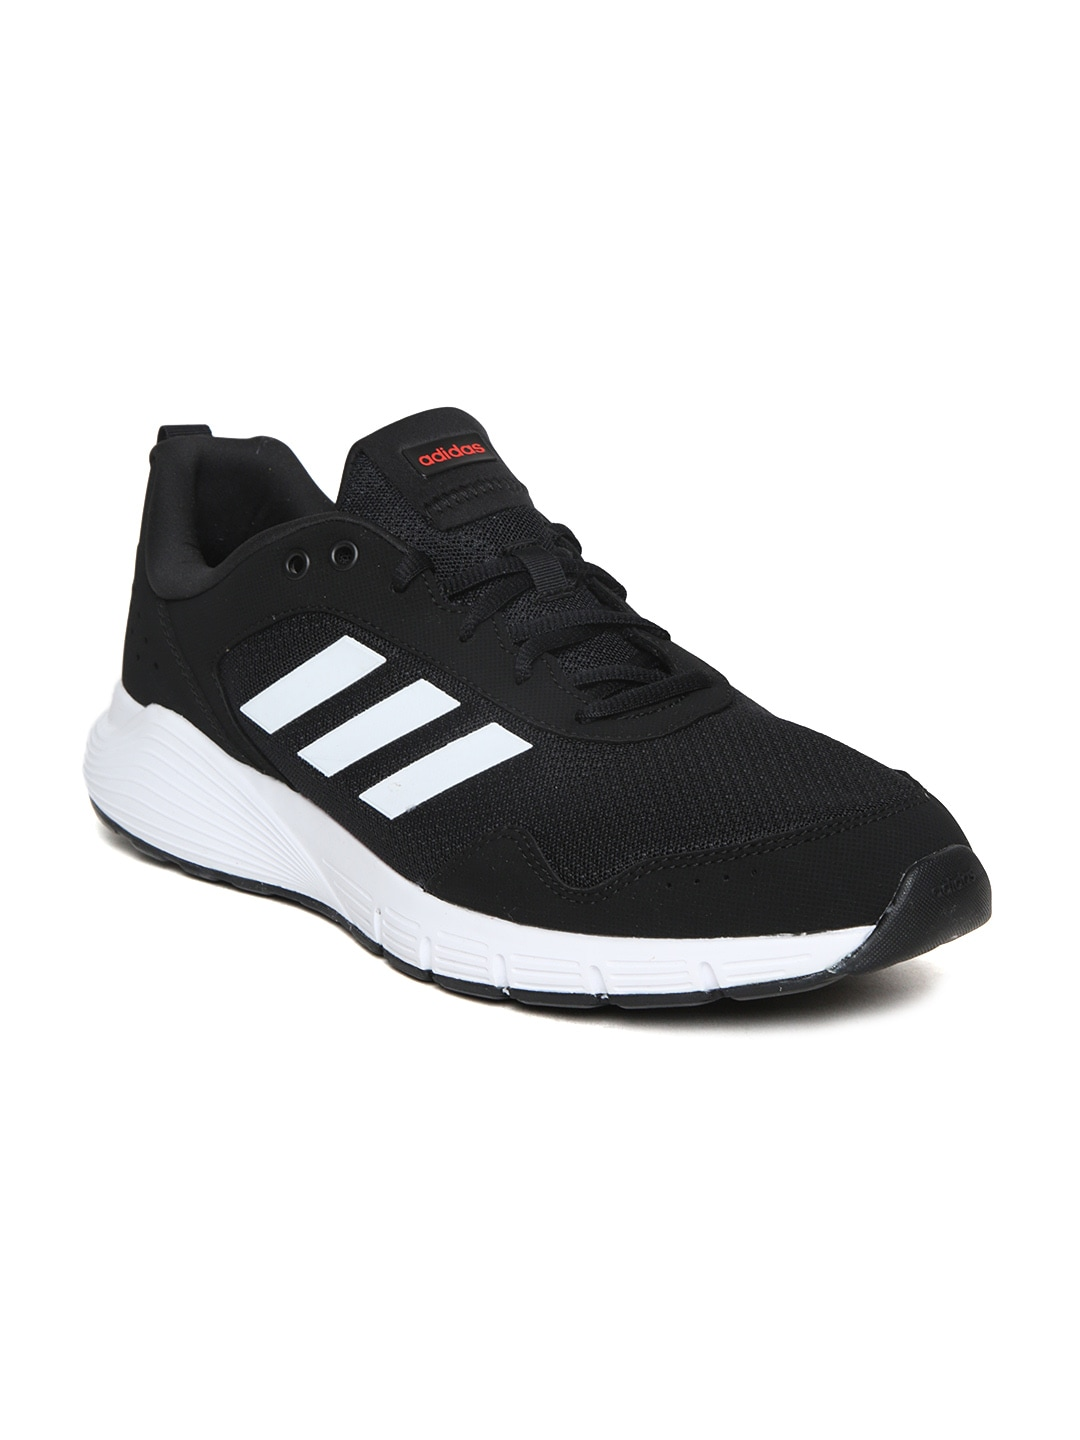 8f1d98ee479e Sports Shoes for Men - Buy Men Sports Shoes Online in India - Myntra